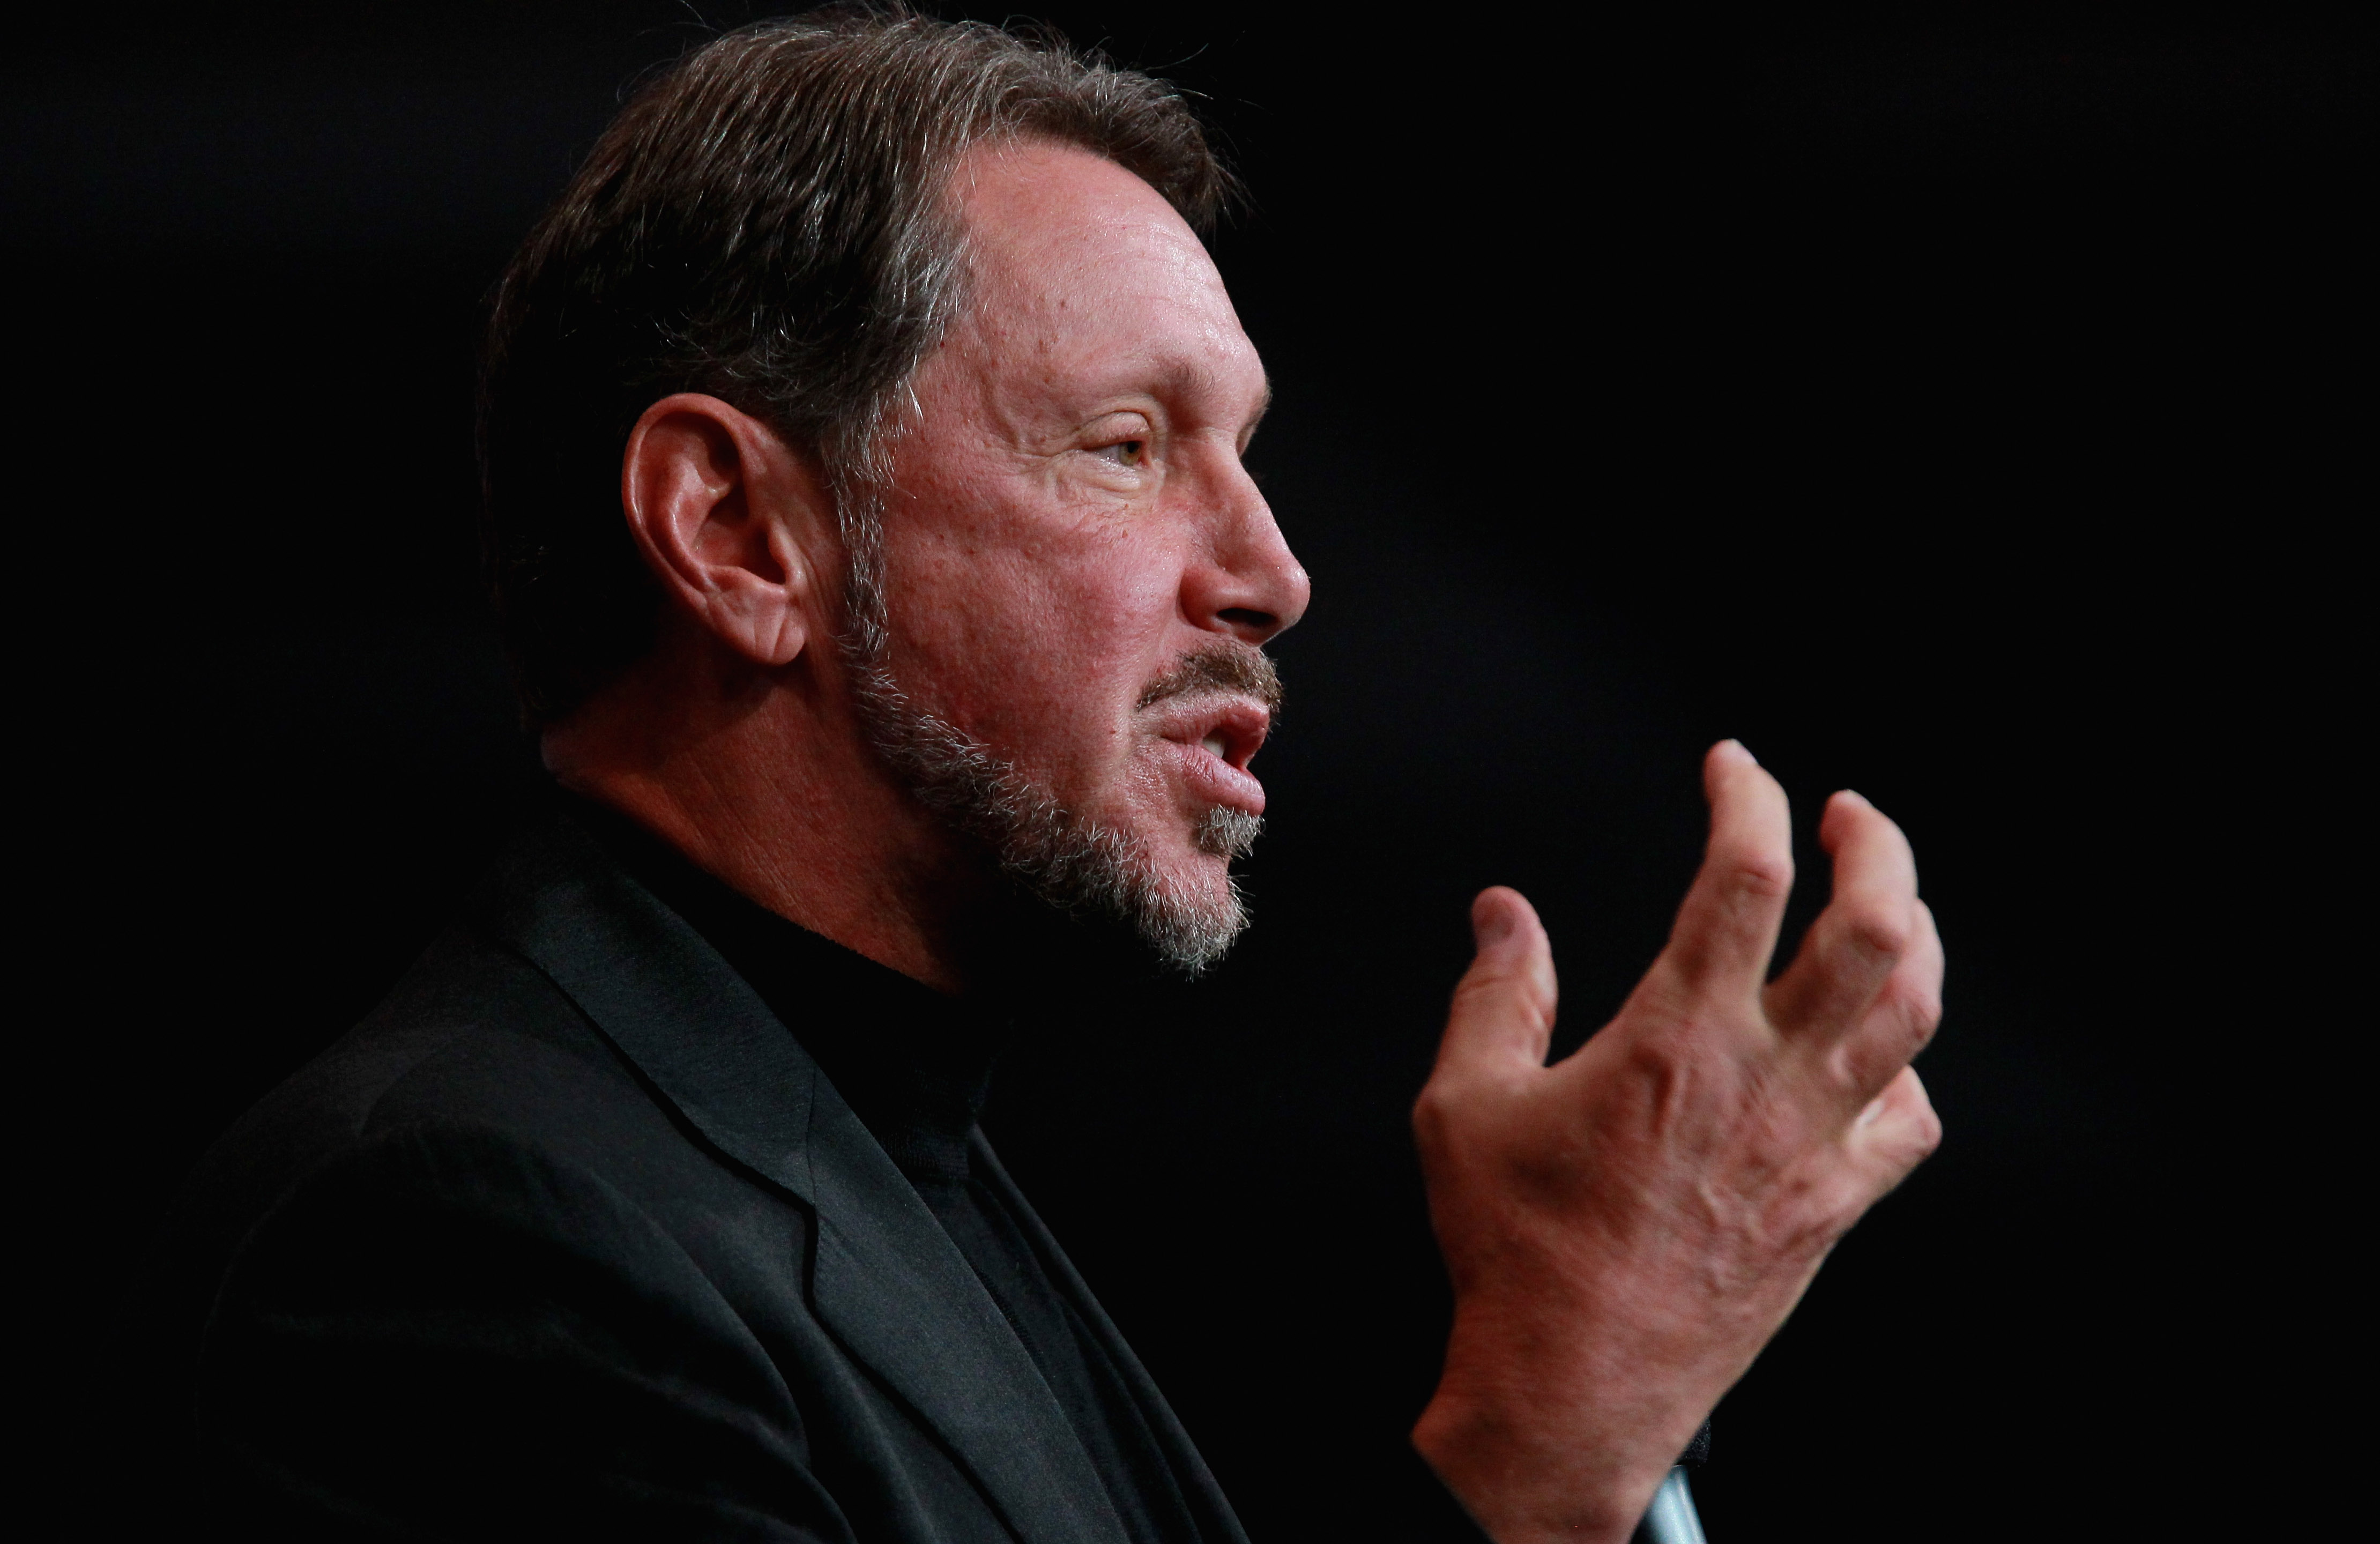 Some Oracle employees plan to walk off the job to protest Larry Ellison's Trump fundraiser